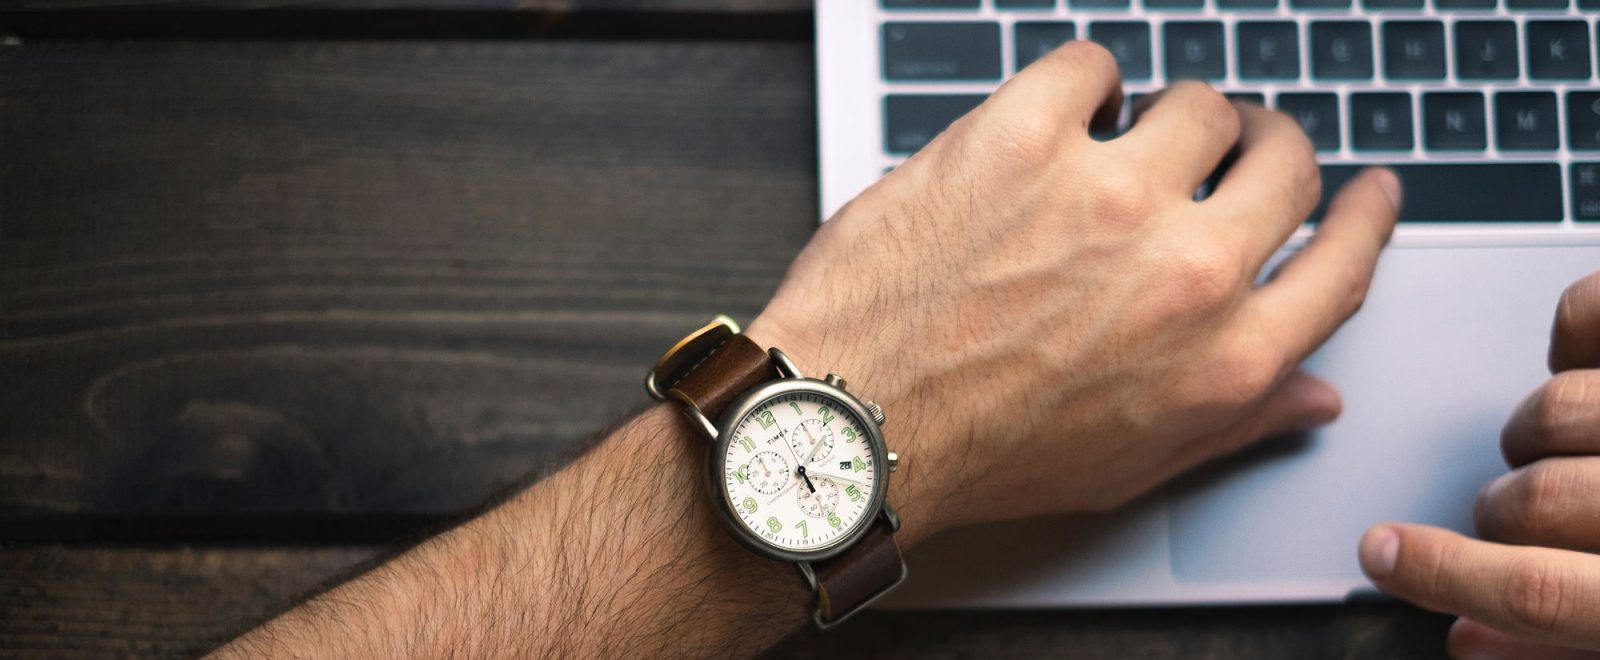 How To Be More Productive In Less Time